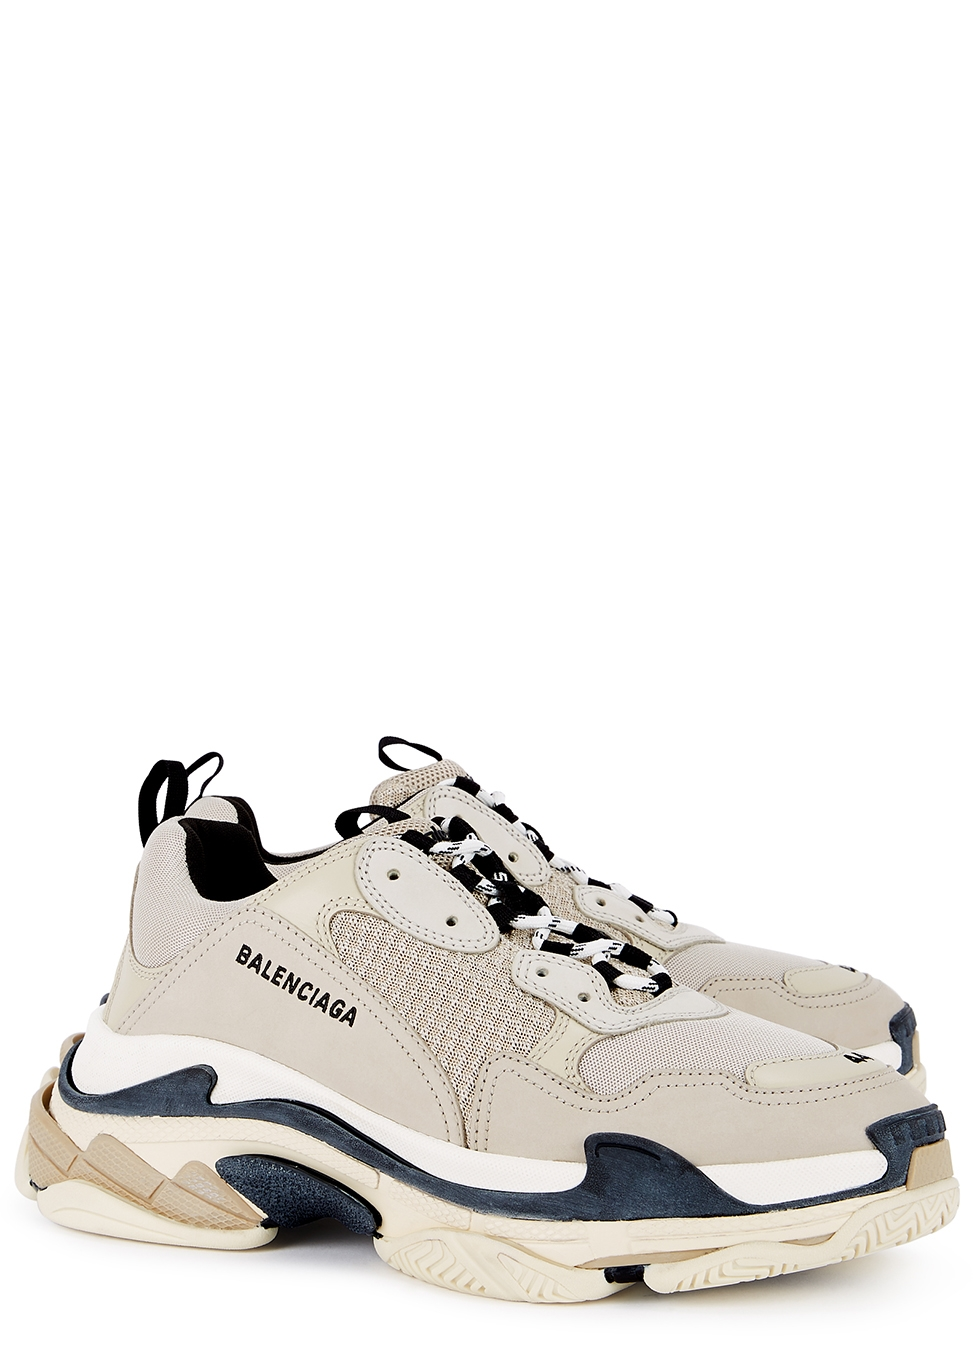 Balenciaga triple s For sale VNDS Worn 3 times Og Depop